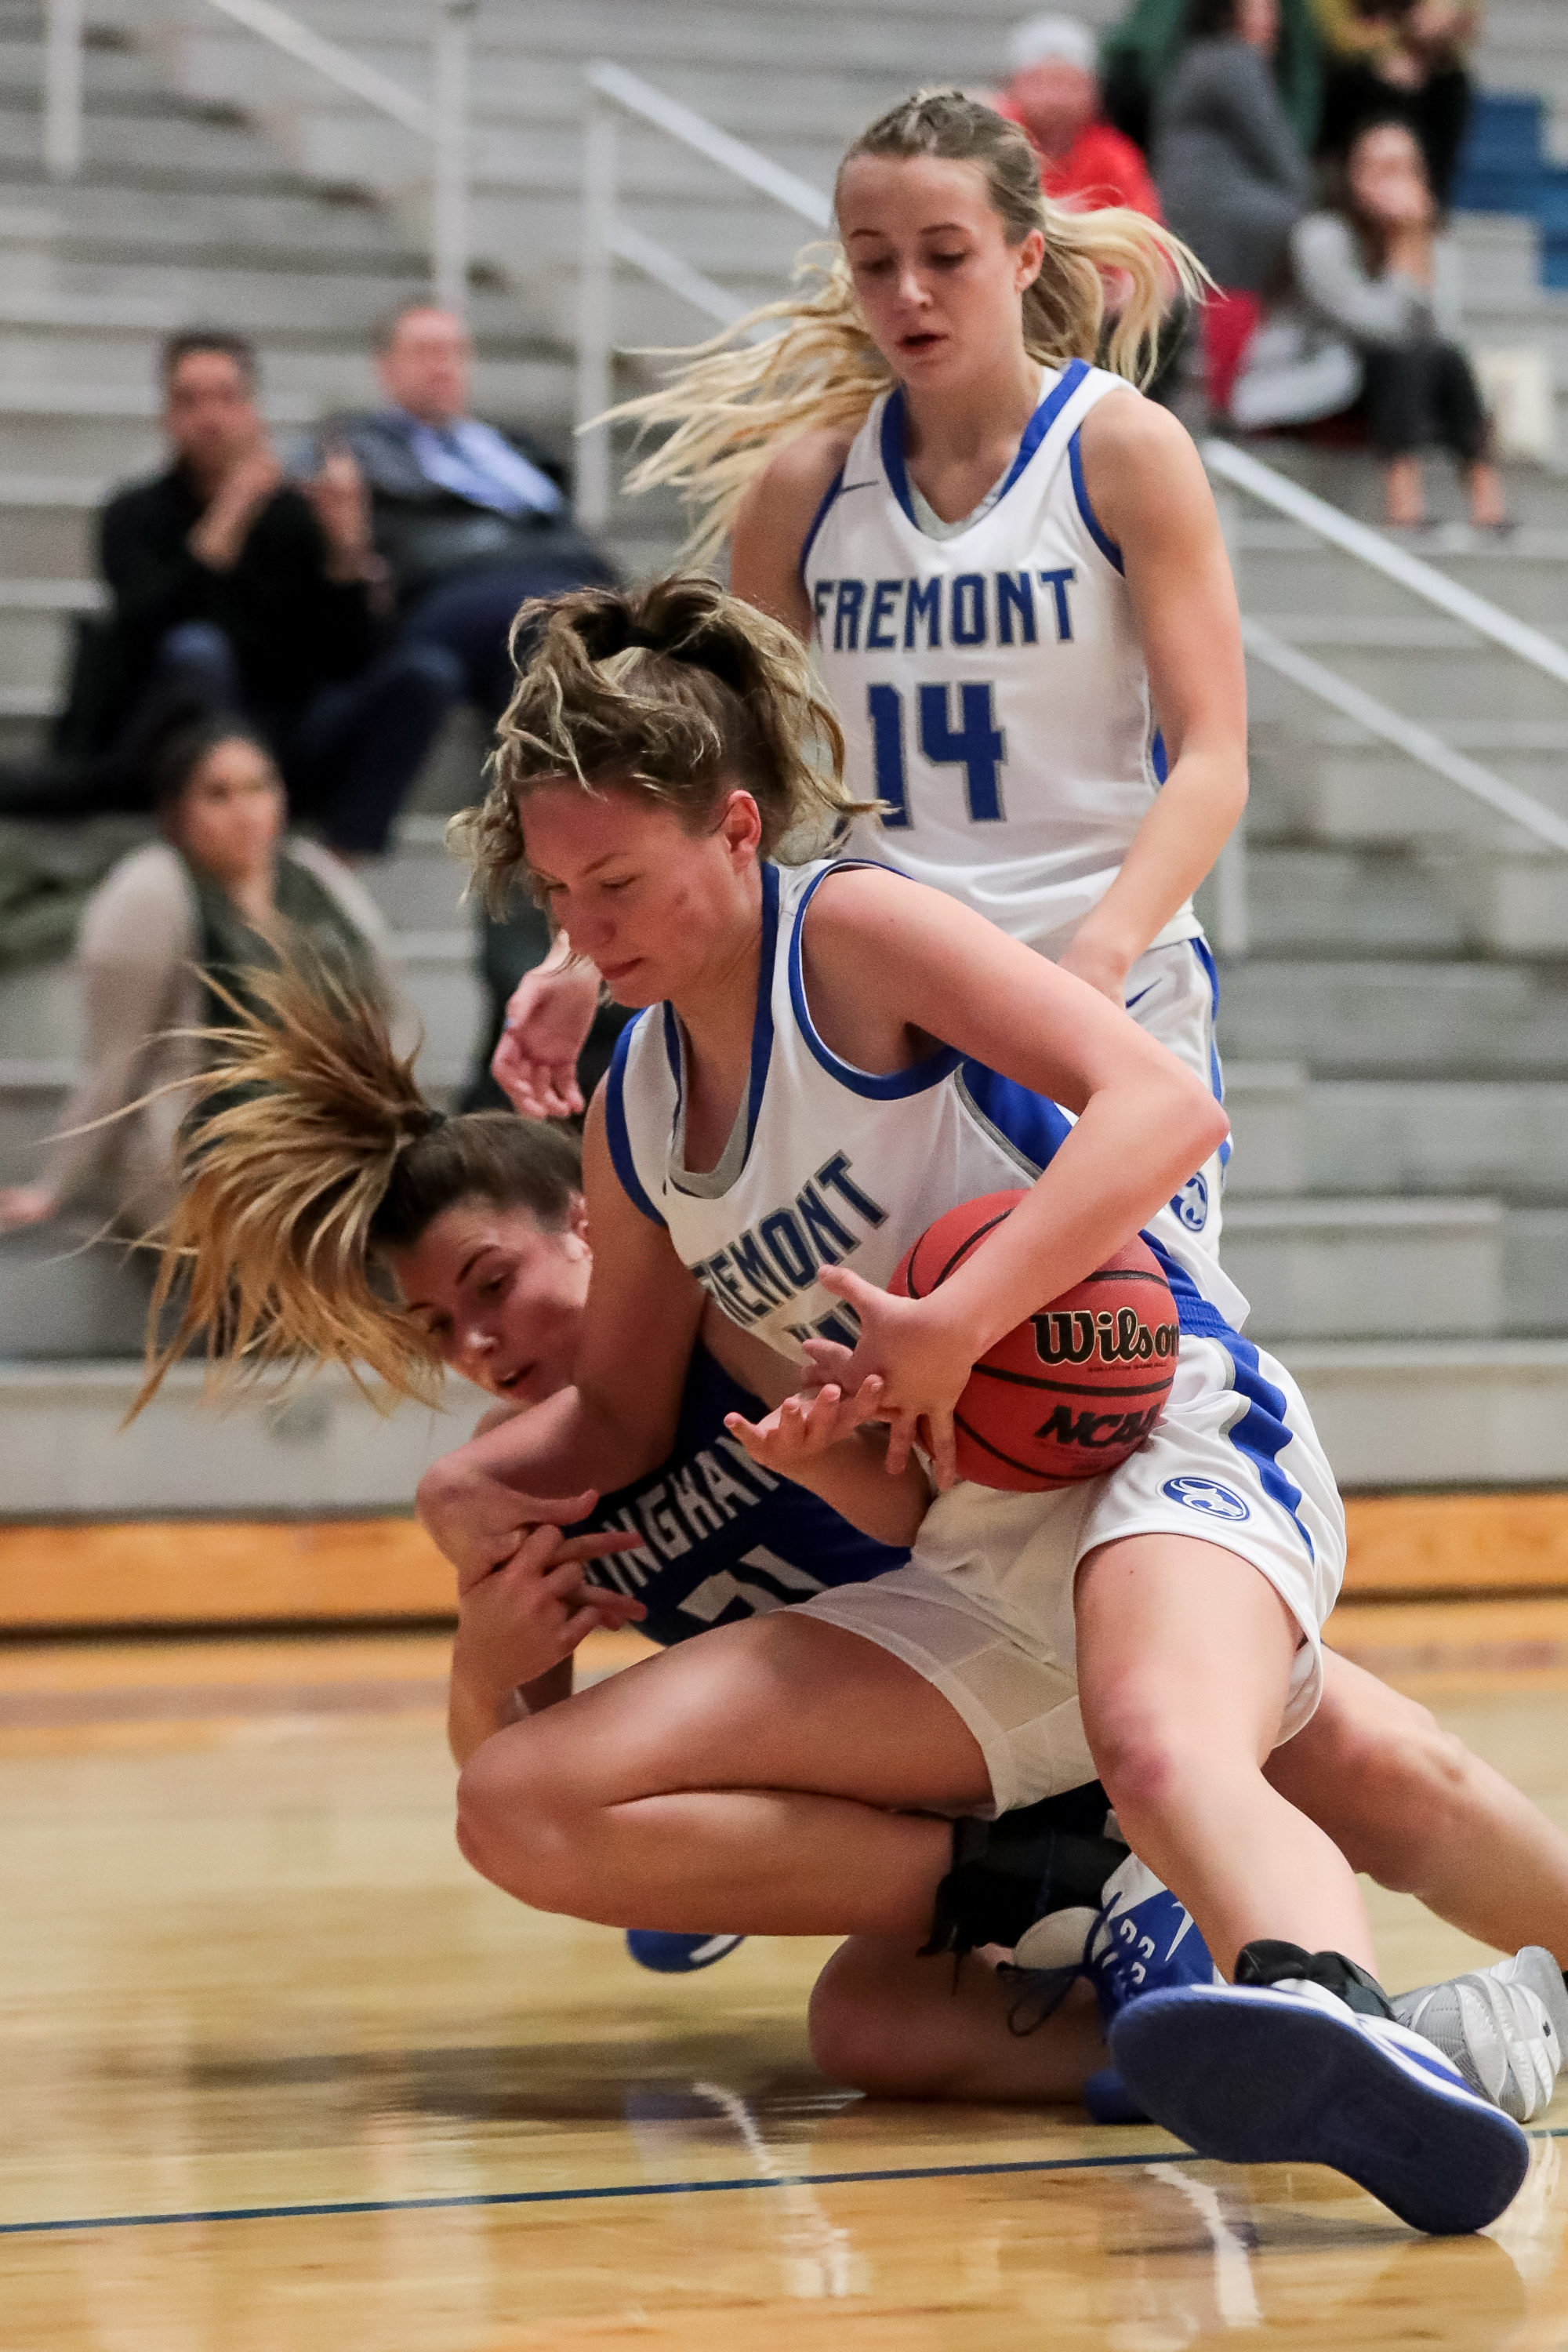 Fremont's Maggie Mendelson and Bingham's Chloe Daniels fall as they vie for control of the ball during a high school girls basketball game at Fremont High School in Plain City on Tuesday, Dec. 3, 2019.